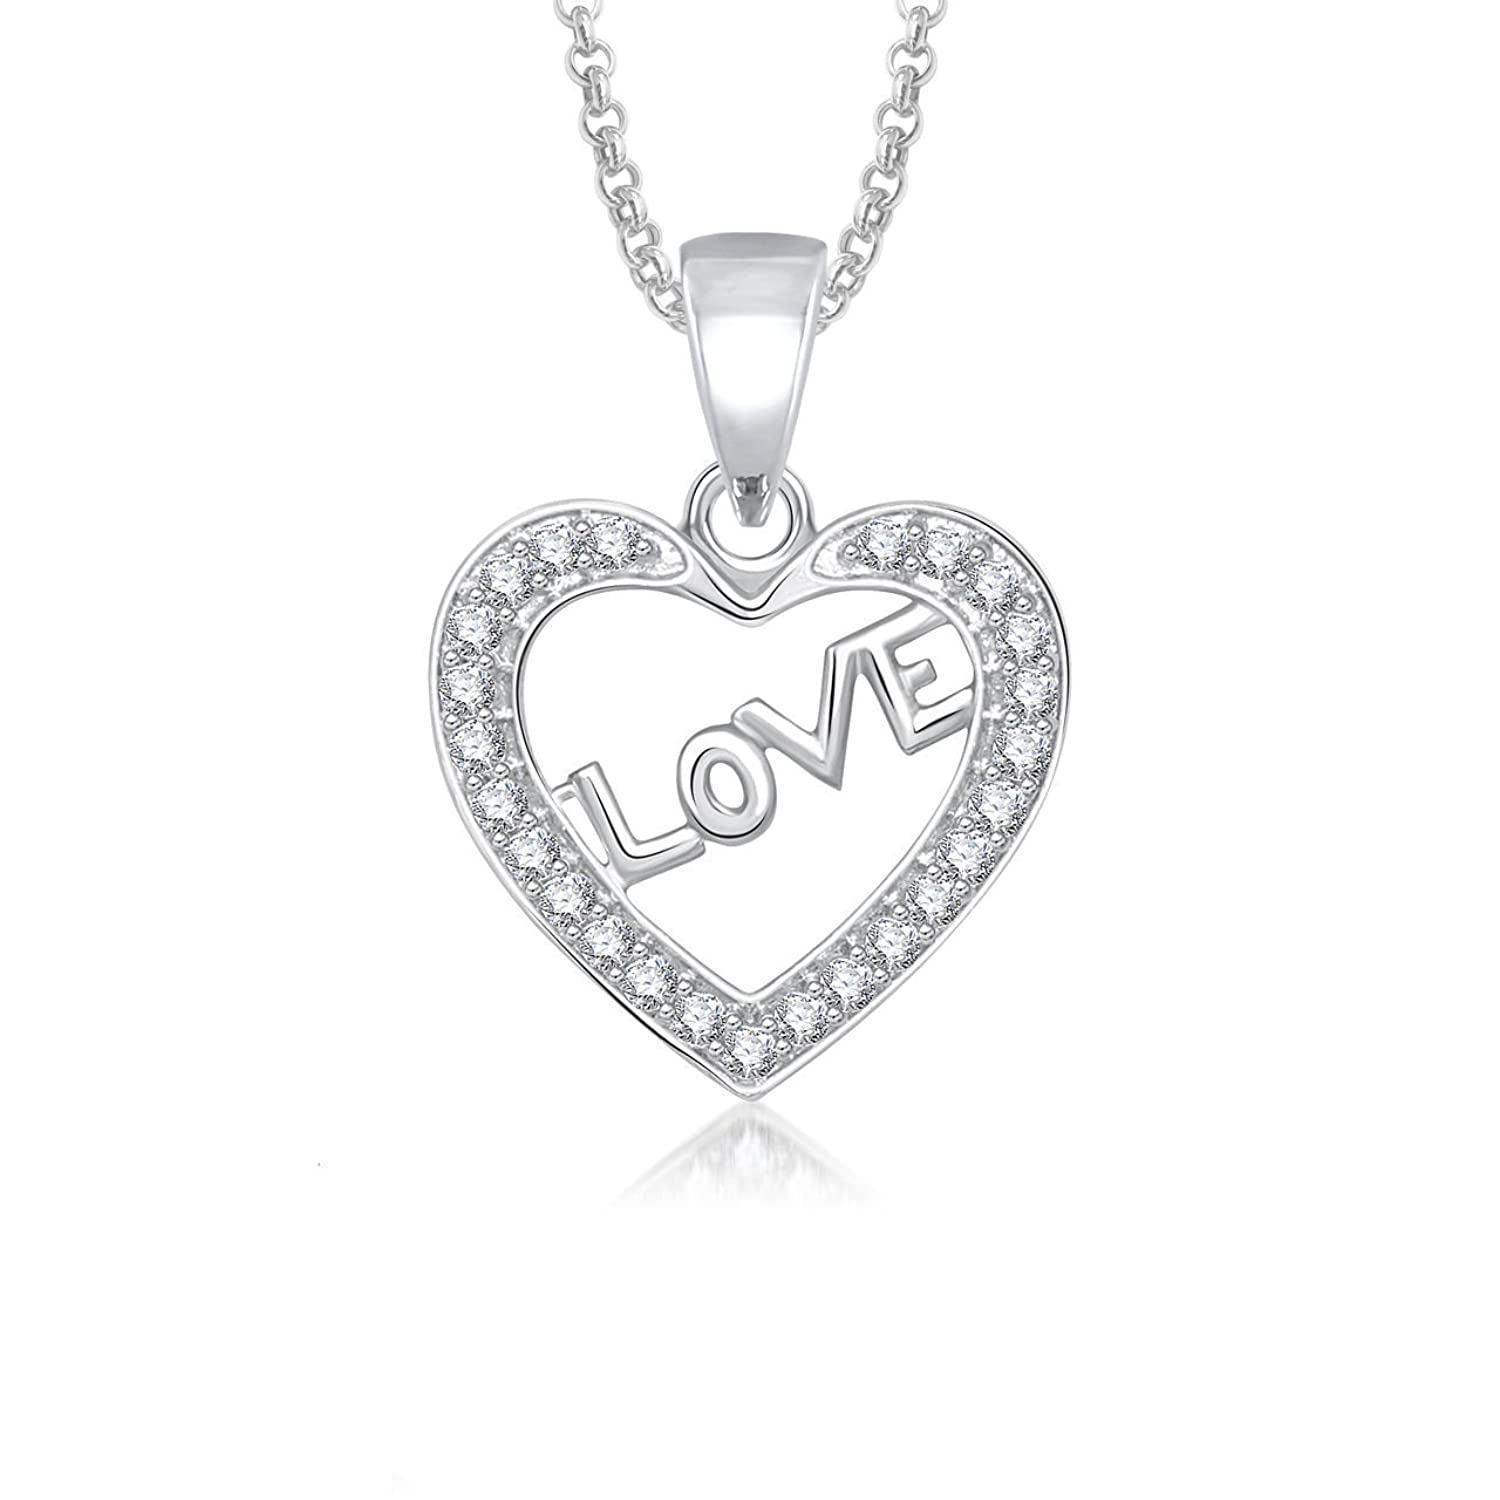 urns jewelry colar ash heart item lockets necklace shape accessories from necklaces on cremation beautiful memorial in pendant remembrance urn